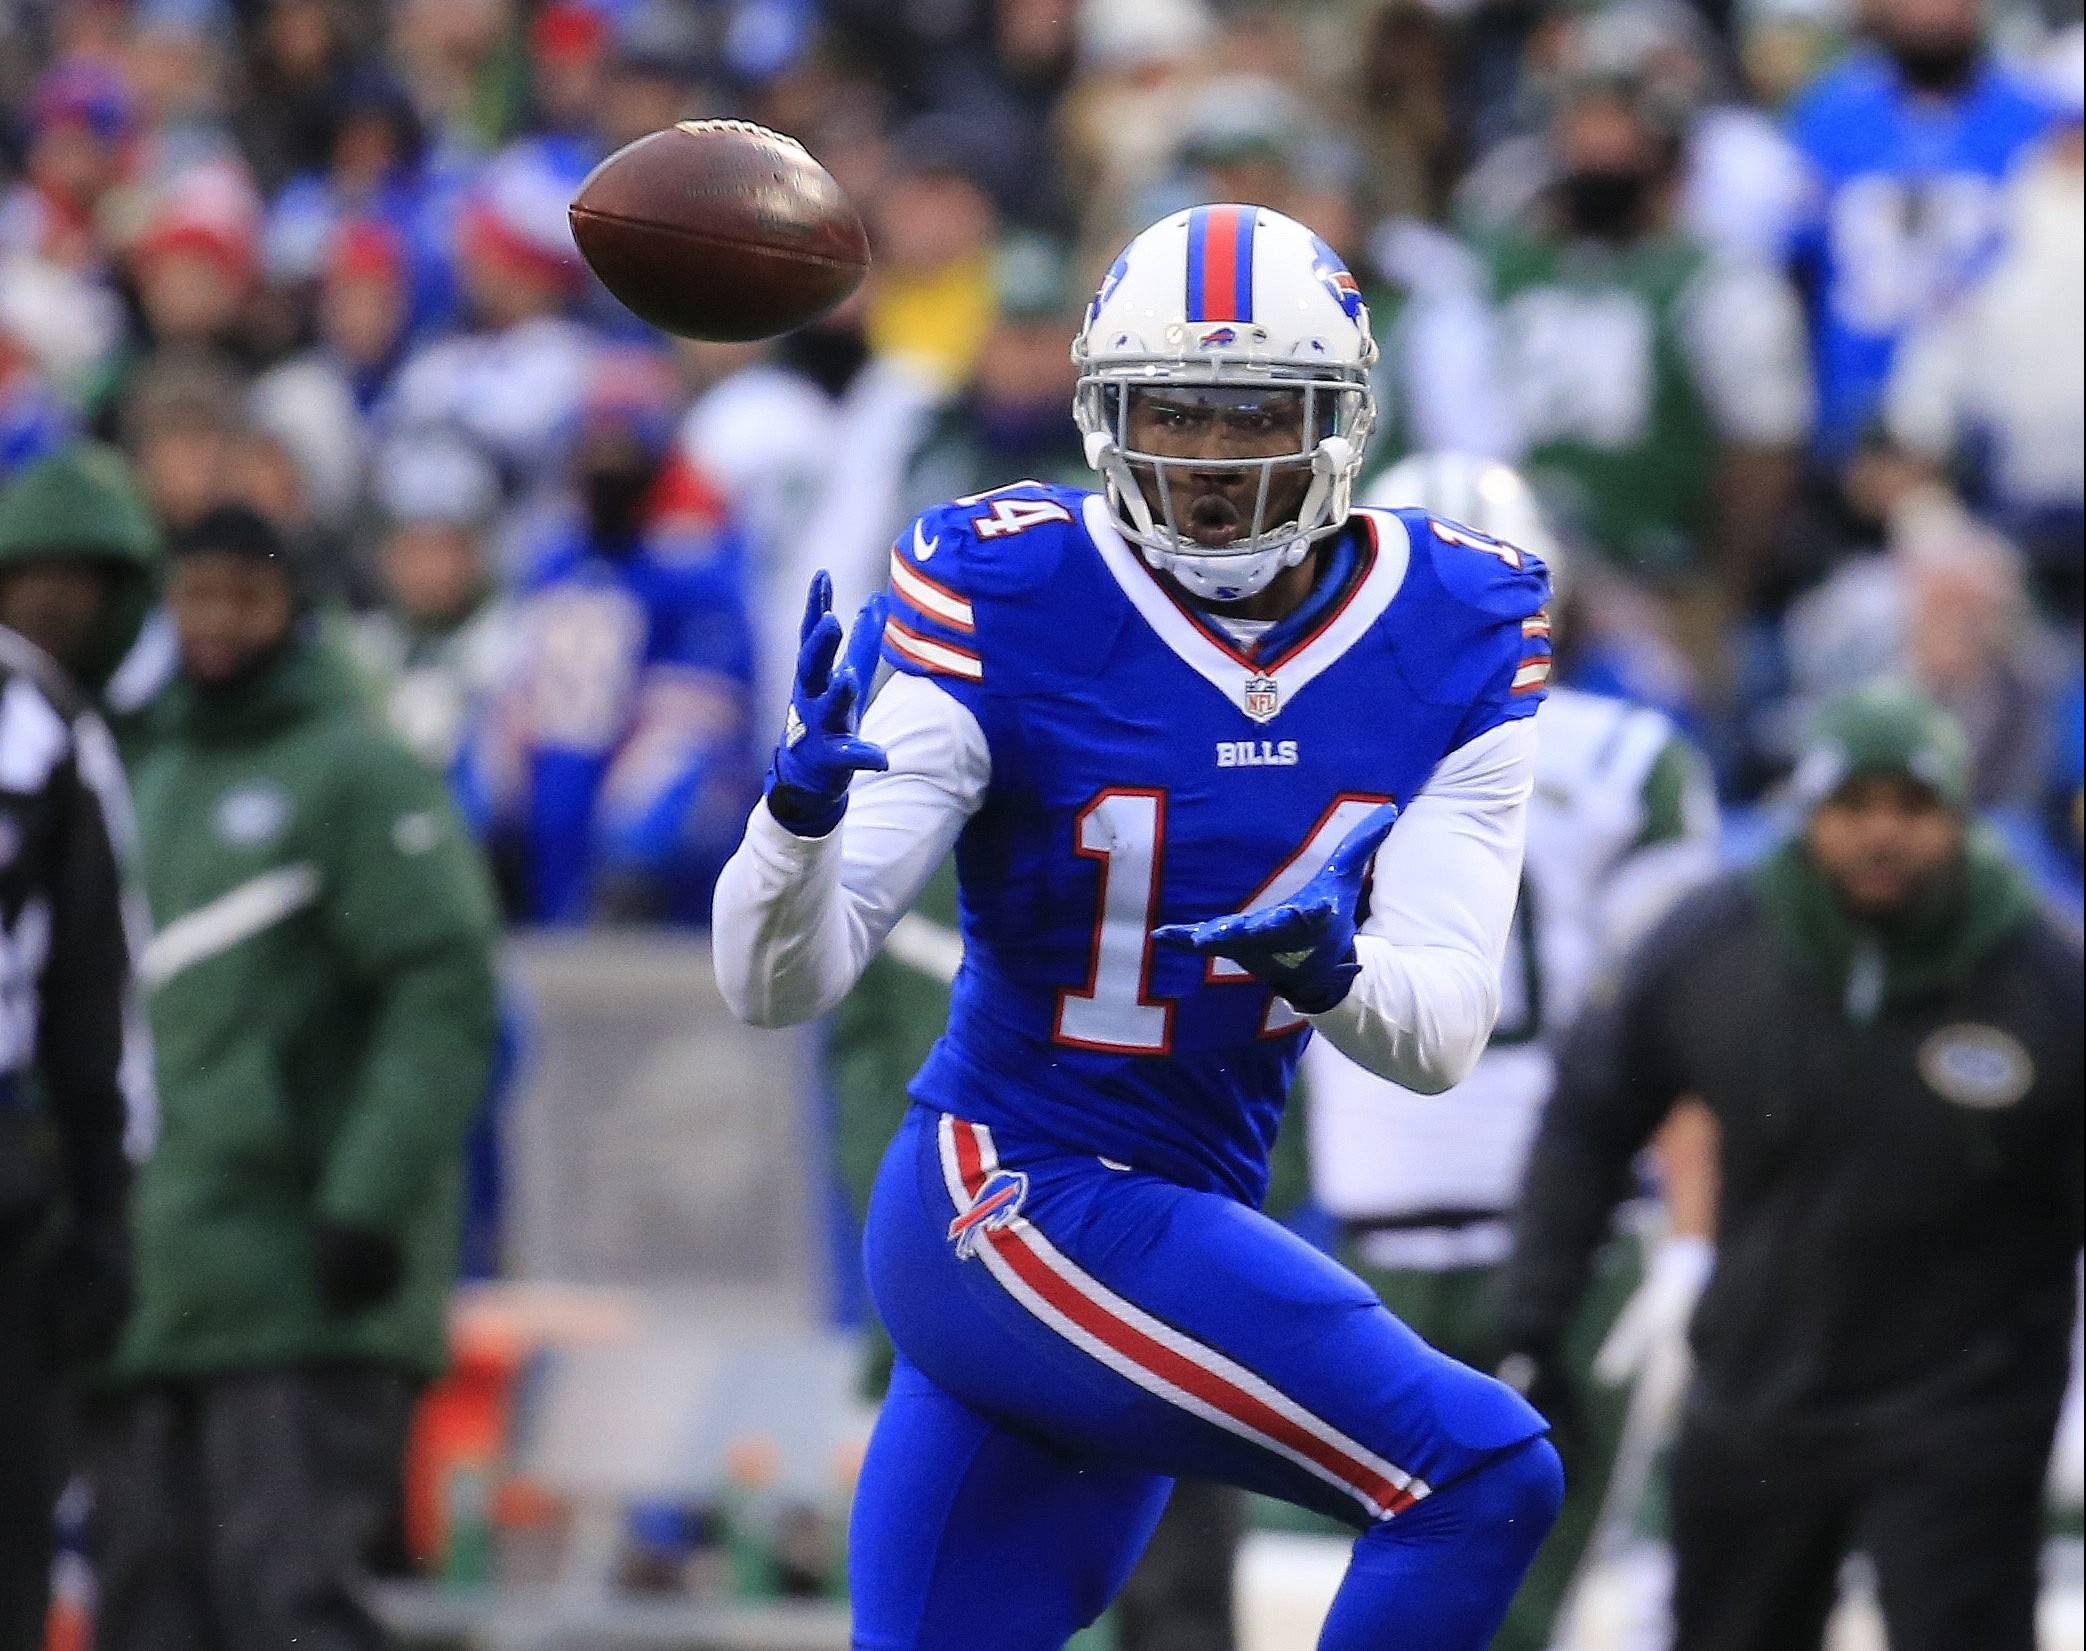 Sammy Watkins emerged in the second half of the season, leading the Bills with 60 receptions..